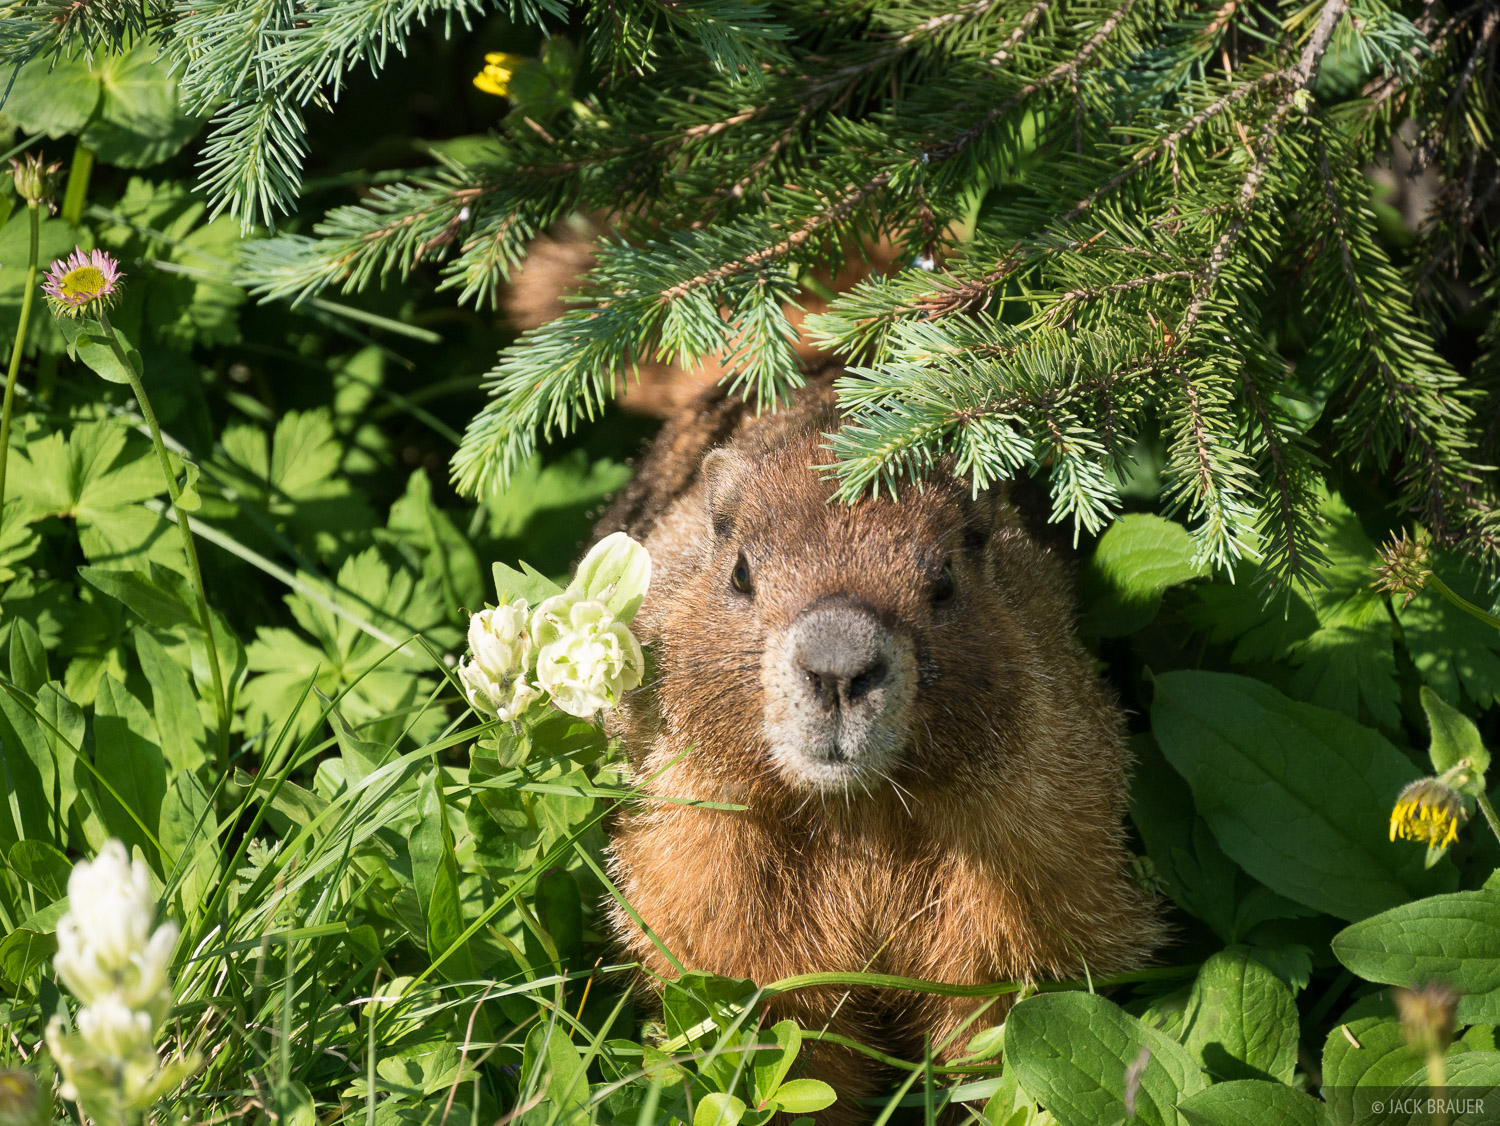 Peekaboo! A marmot peeks out from the flowers.